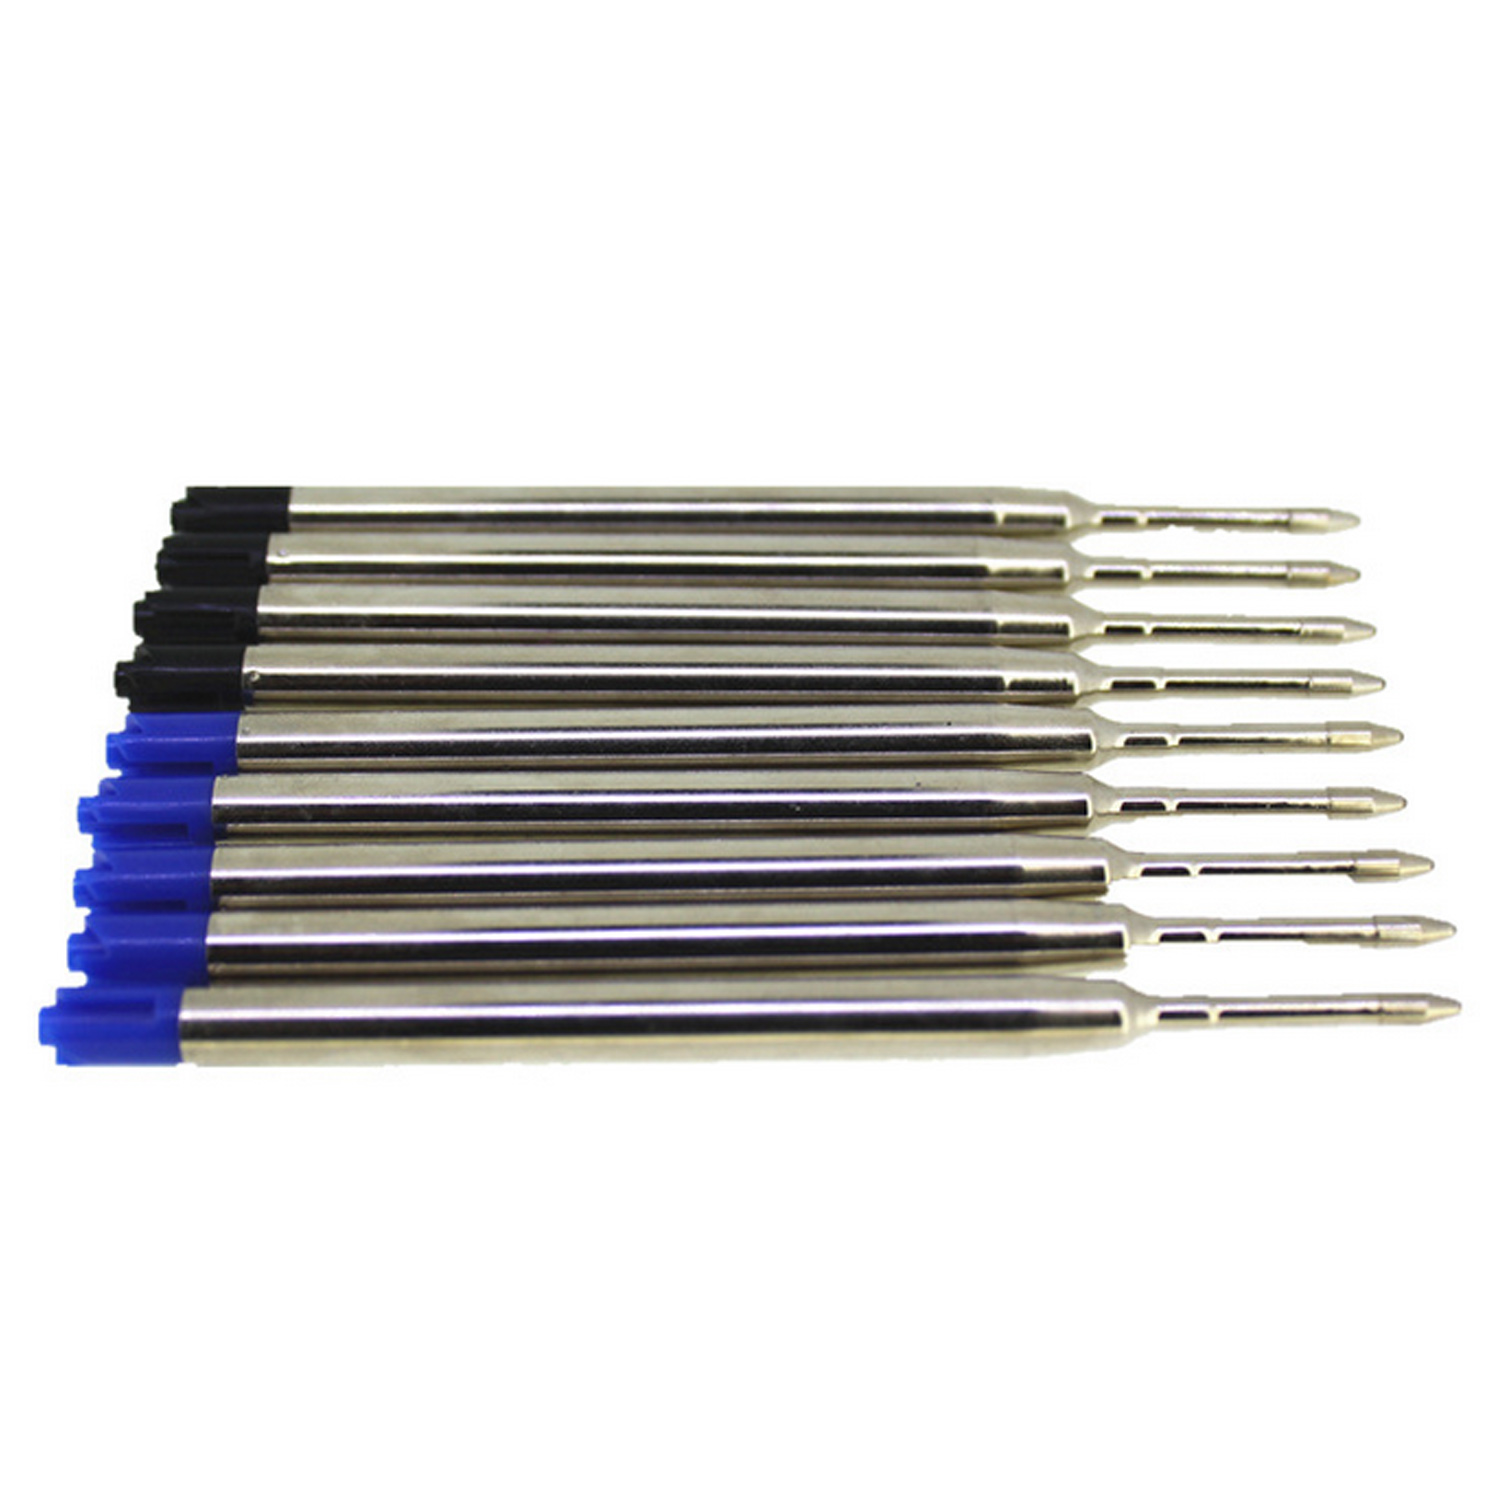 6pcs 0.7mm Ballpoint Medium Point Point Pen Refills Replacement Refills for Parker Pens School Office Stationery Supplies